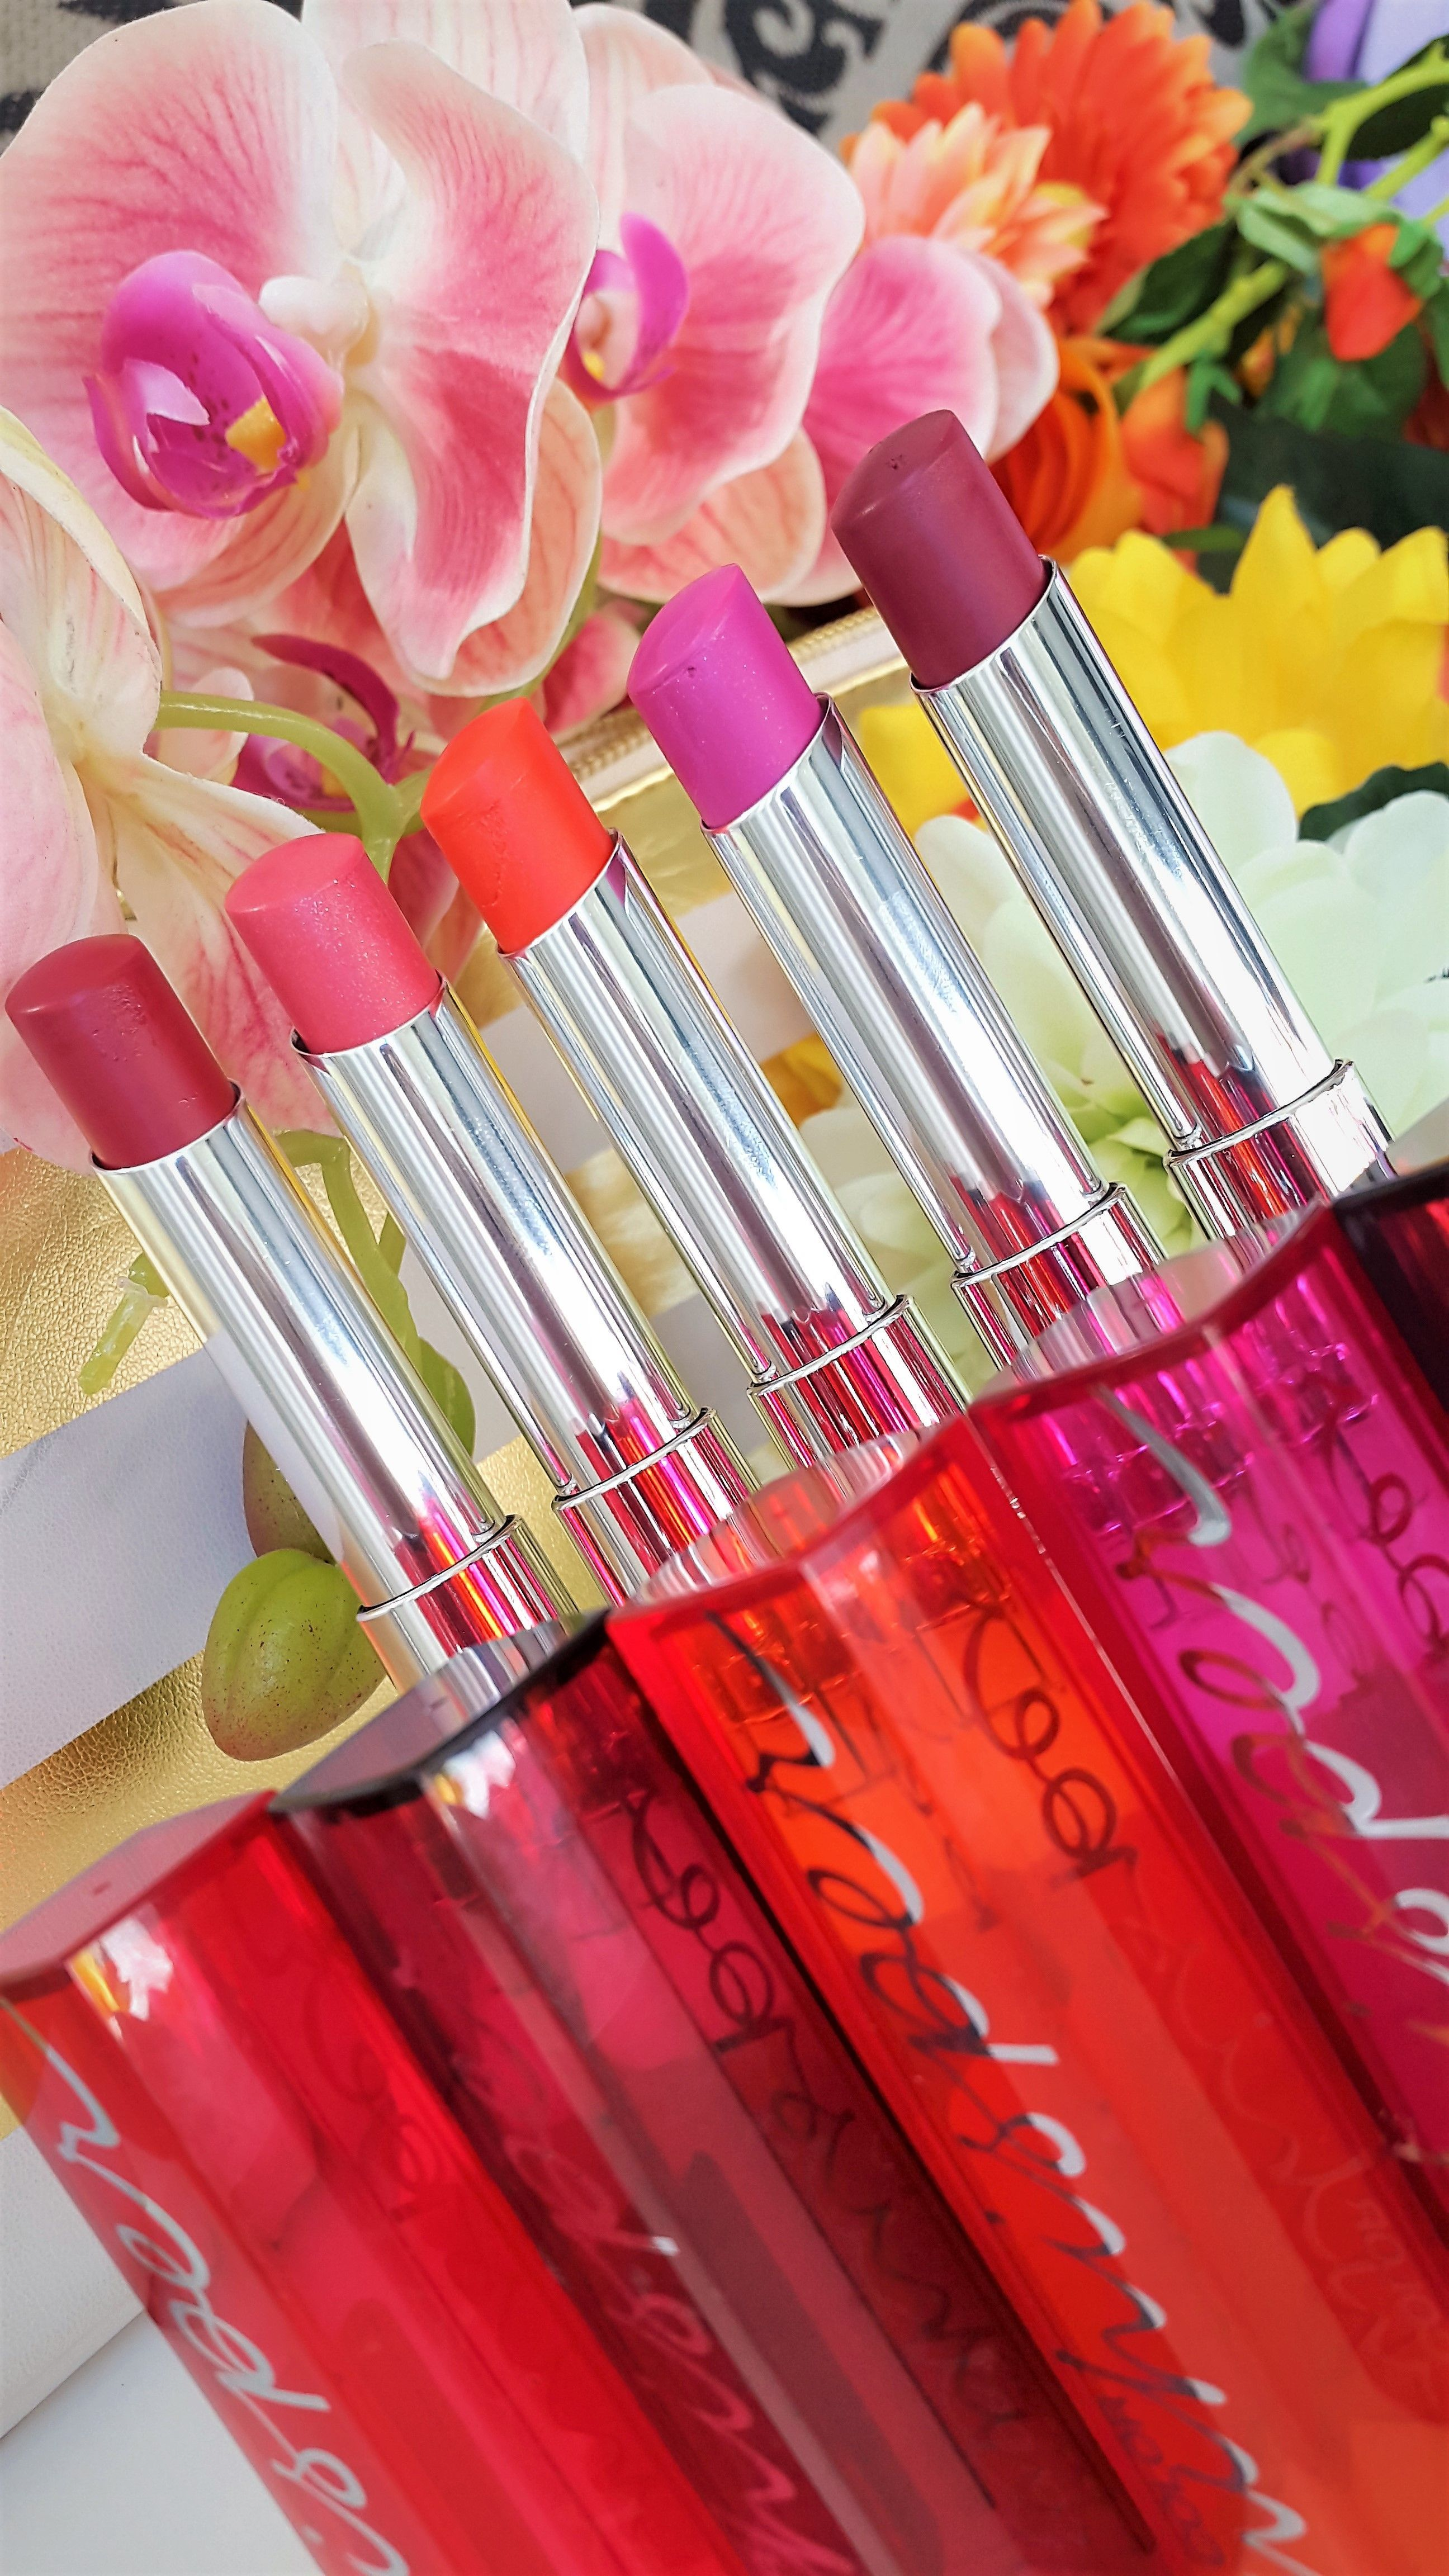 Maybelline Color Whisper Lipsticks in my lipstick collection.